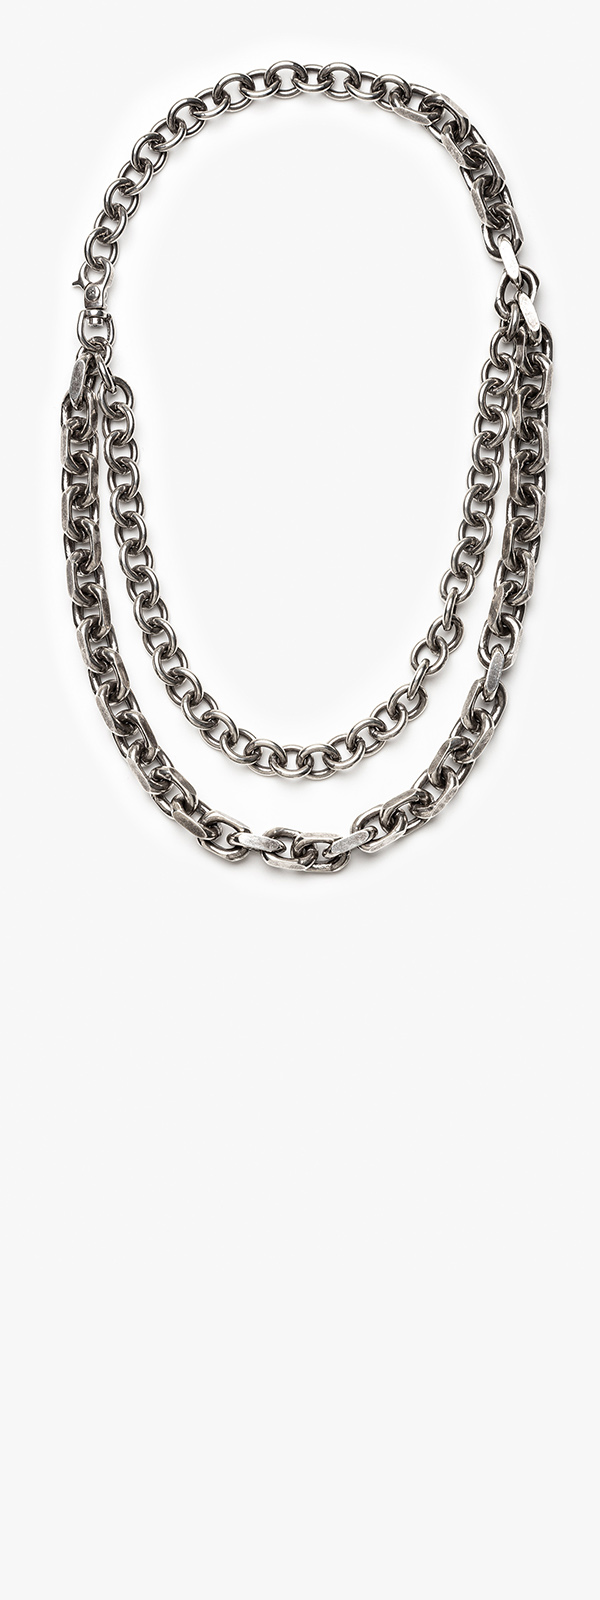 Image of Solid Link Necklace 010